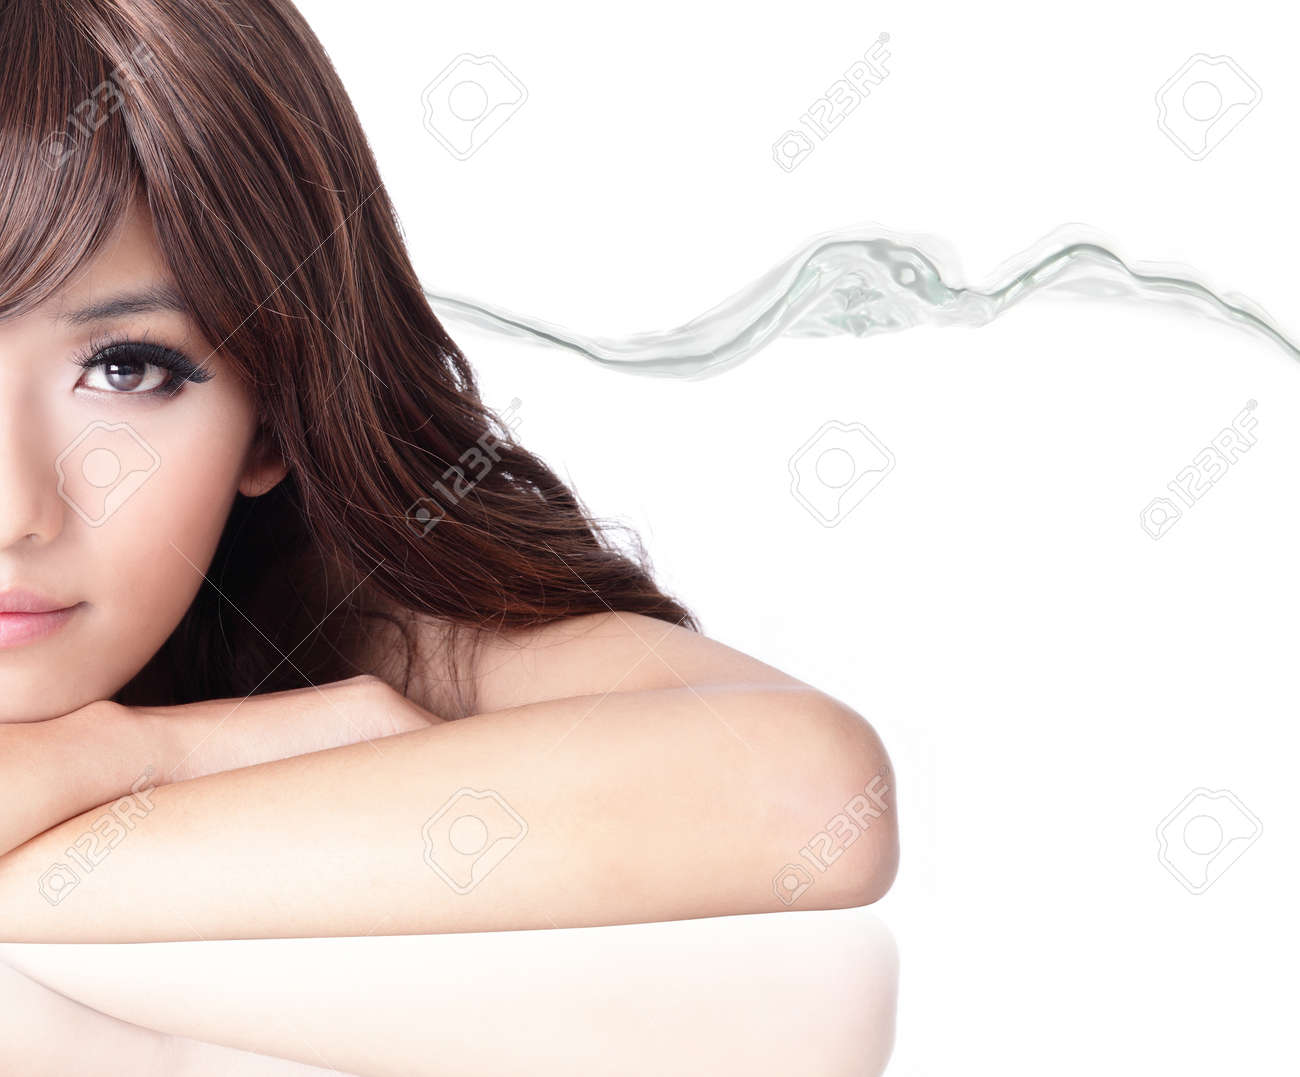 Sexy fashion woman smile face portrait close up with water background isolated on white background, model is a asian beauty Stock Photo - 12922388